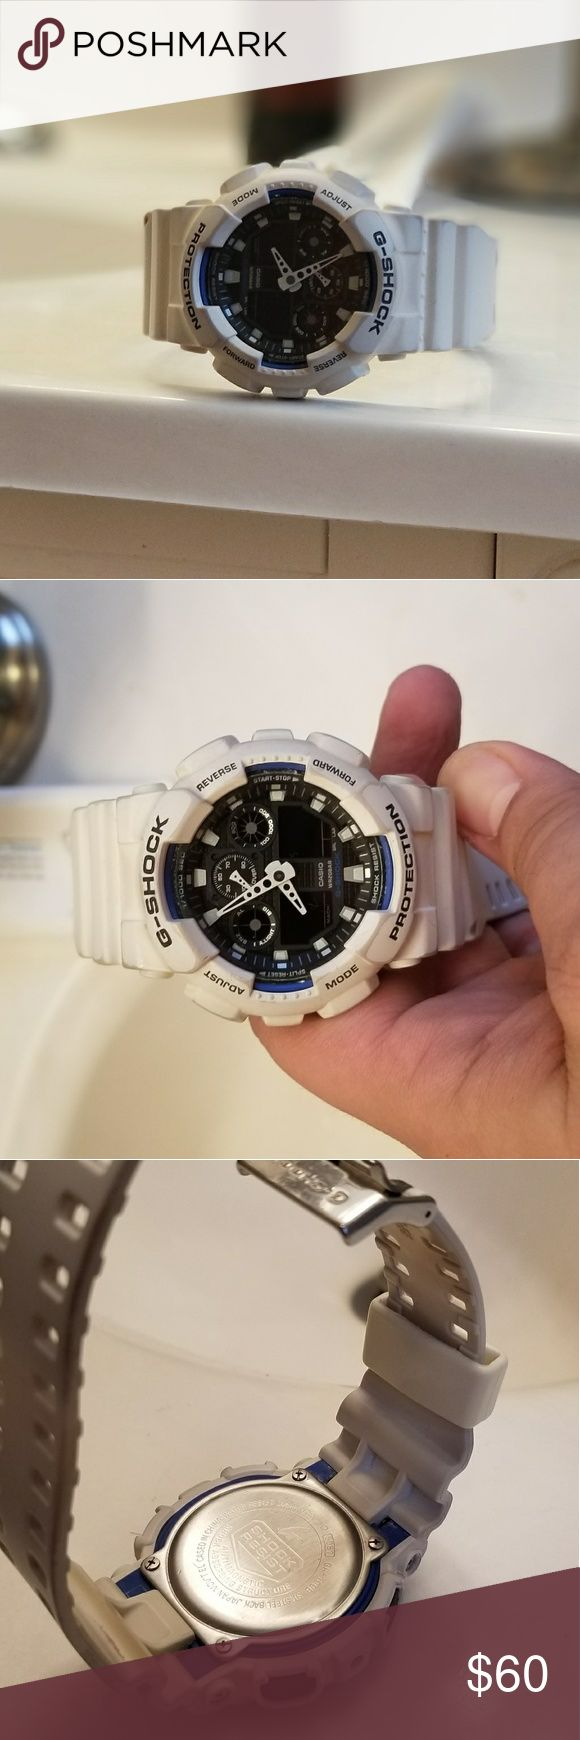 G Shock watch White G Shock watch.  Limited edition. Currently on Amazon for $140. At this price it's sure to sell quickly.  Battery just died and needs to be replaced. G-Shock Other